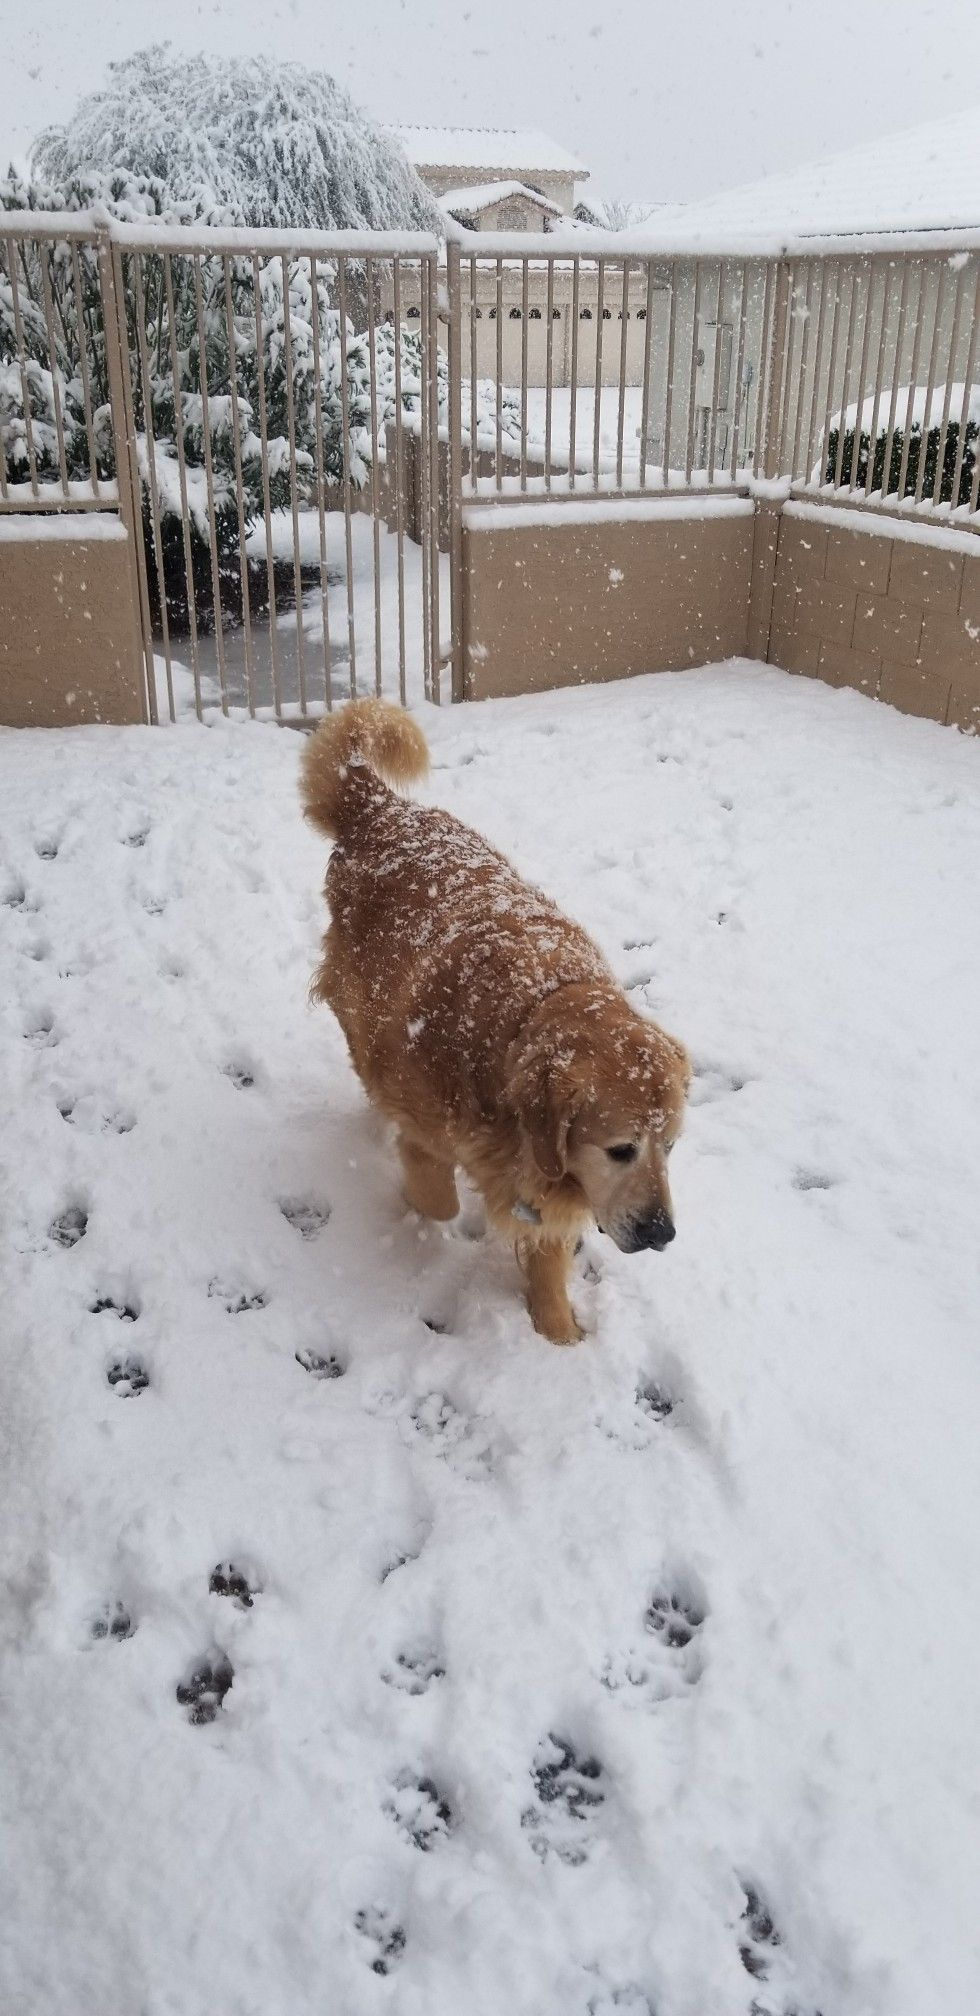 My golden retriever enjoyed the snow in Tucson in February